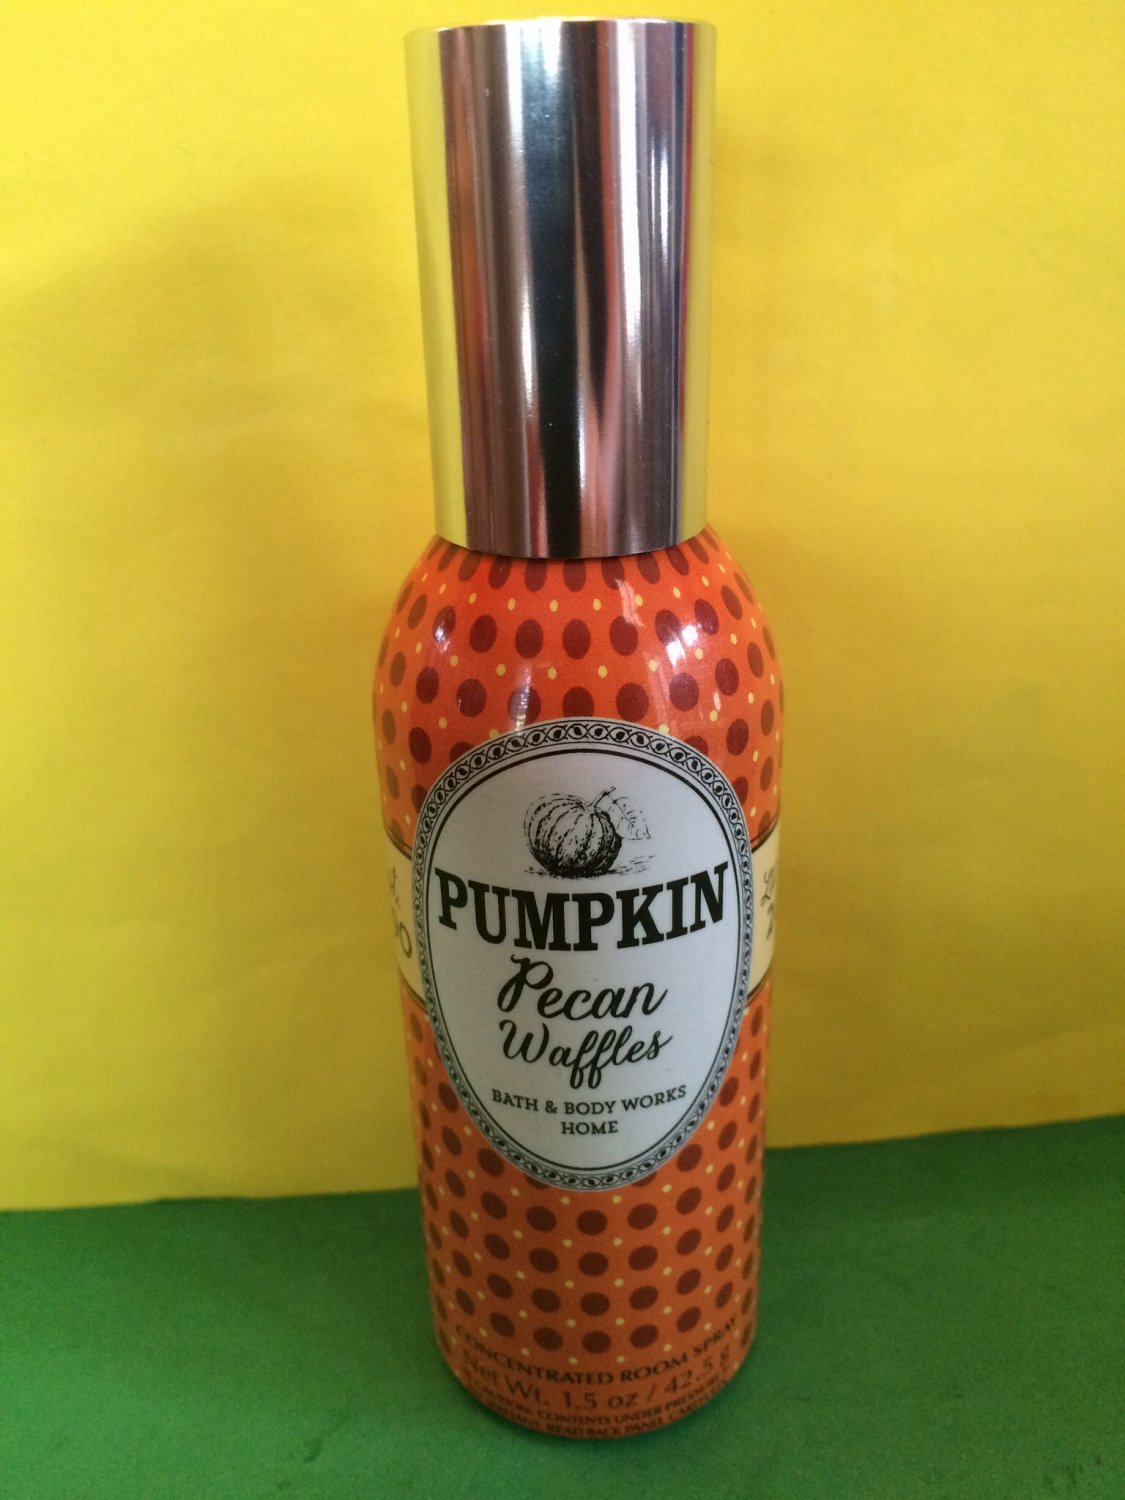 Bath Amp Body Works Pumpkin Pecan Waffles Home Fragrance Spray